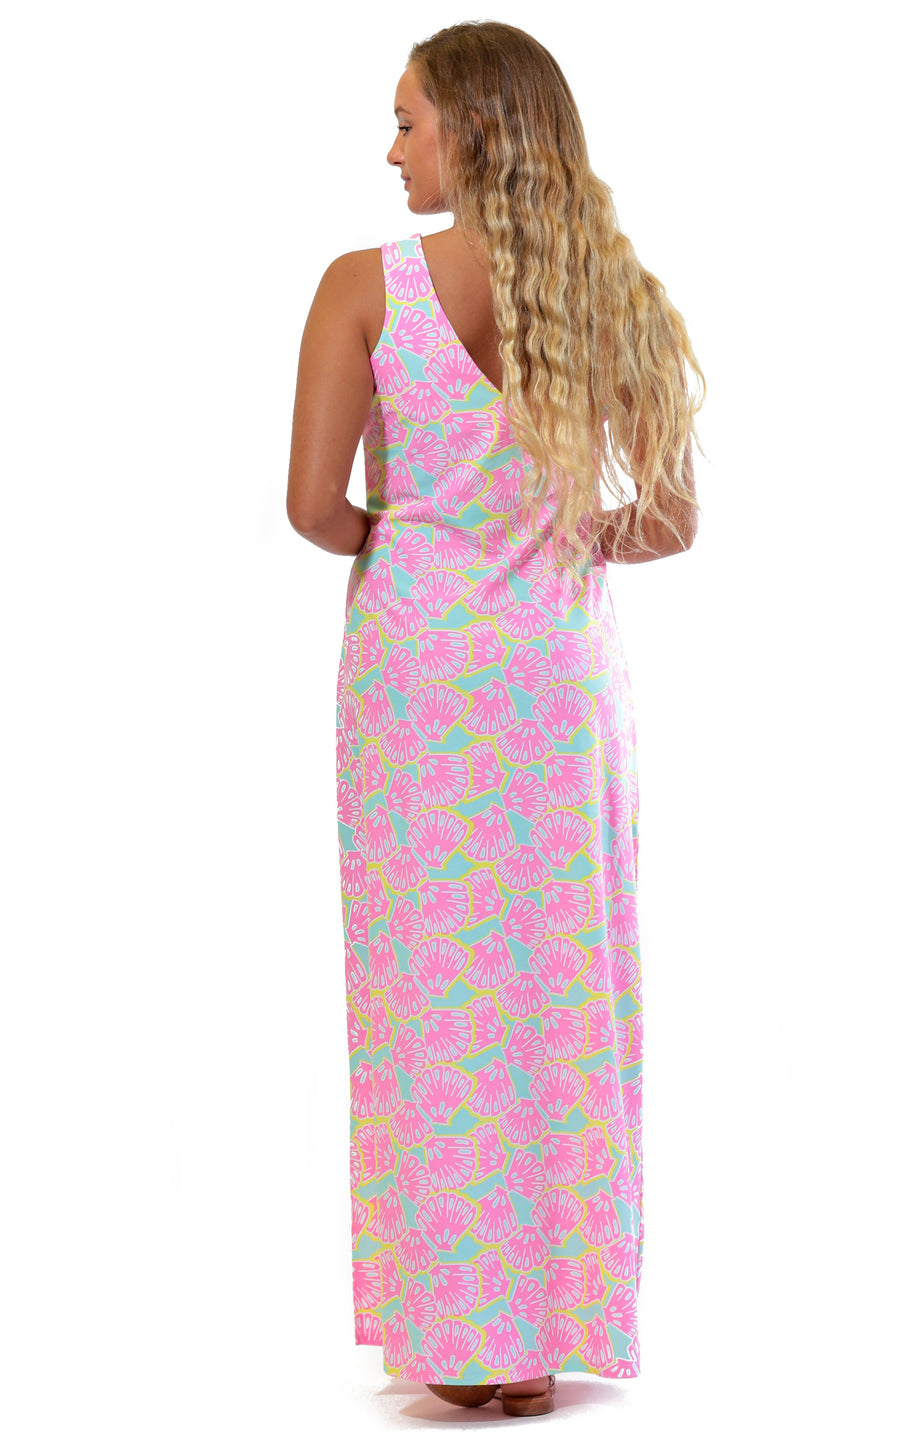 Shellicious Seaside Ridge Maxi Dress